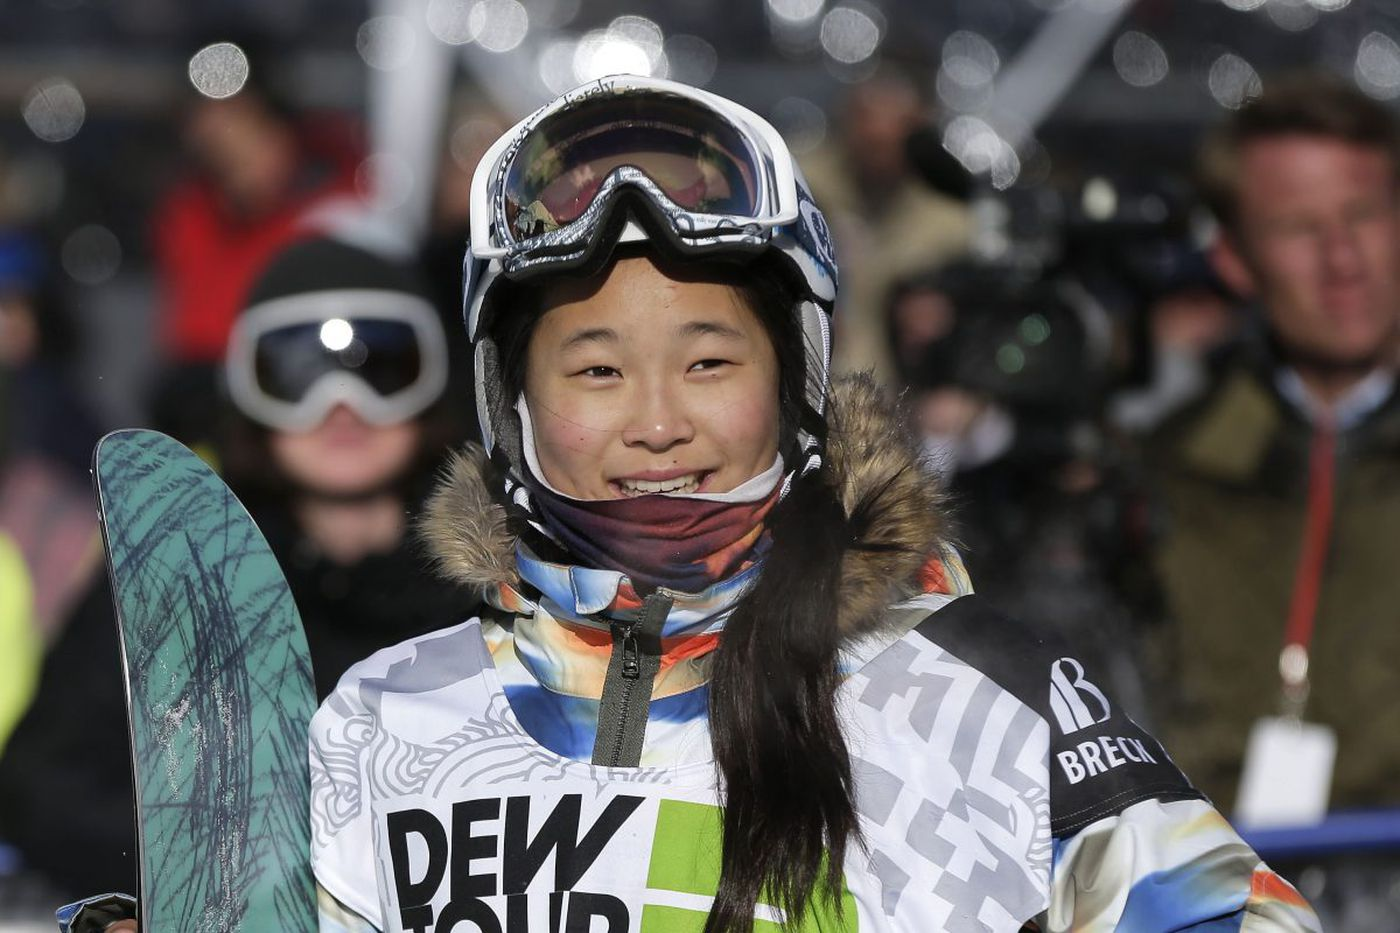 Chloe Kim to go for Olympic gold Monday night